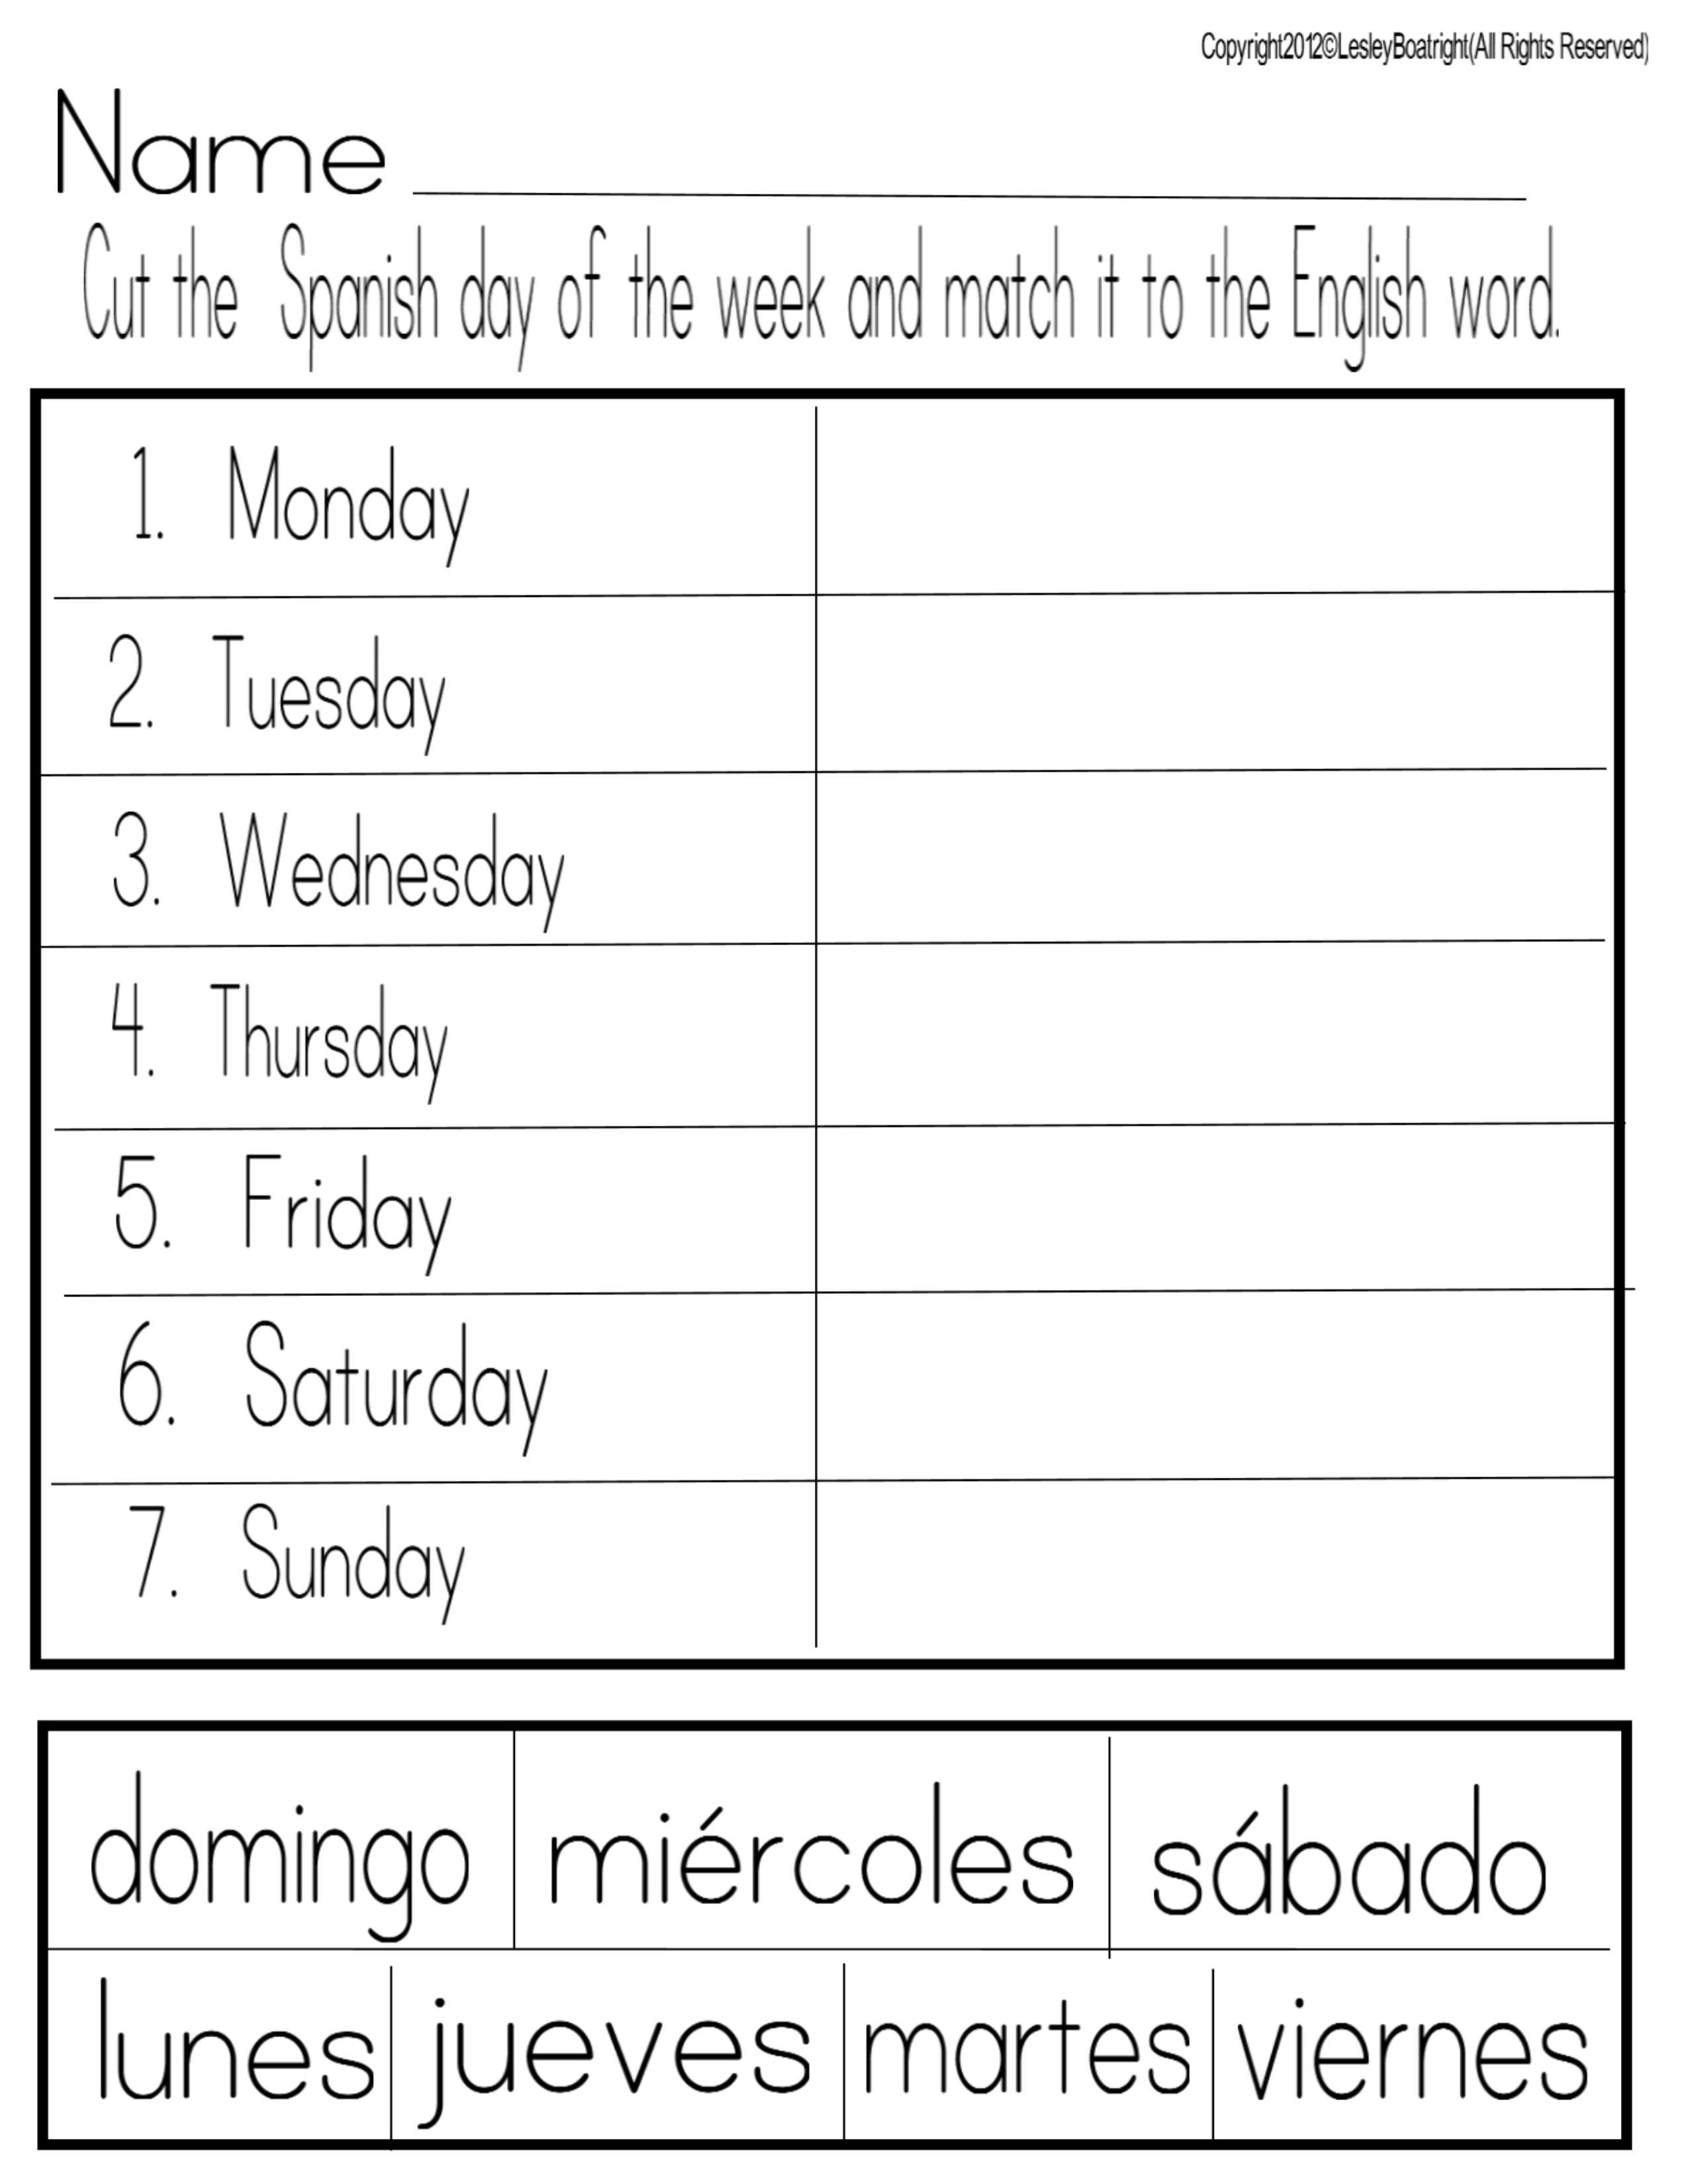 math worksheet : adult cool printable spanish worksheets for kids gallery images  : Free Spanish Worksheets For Kindergarten